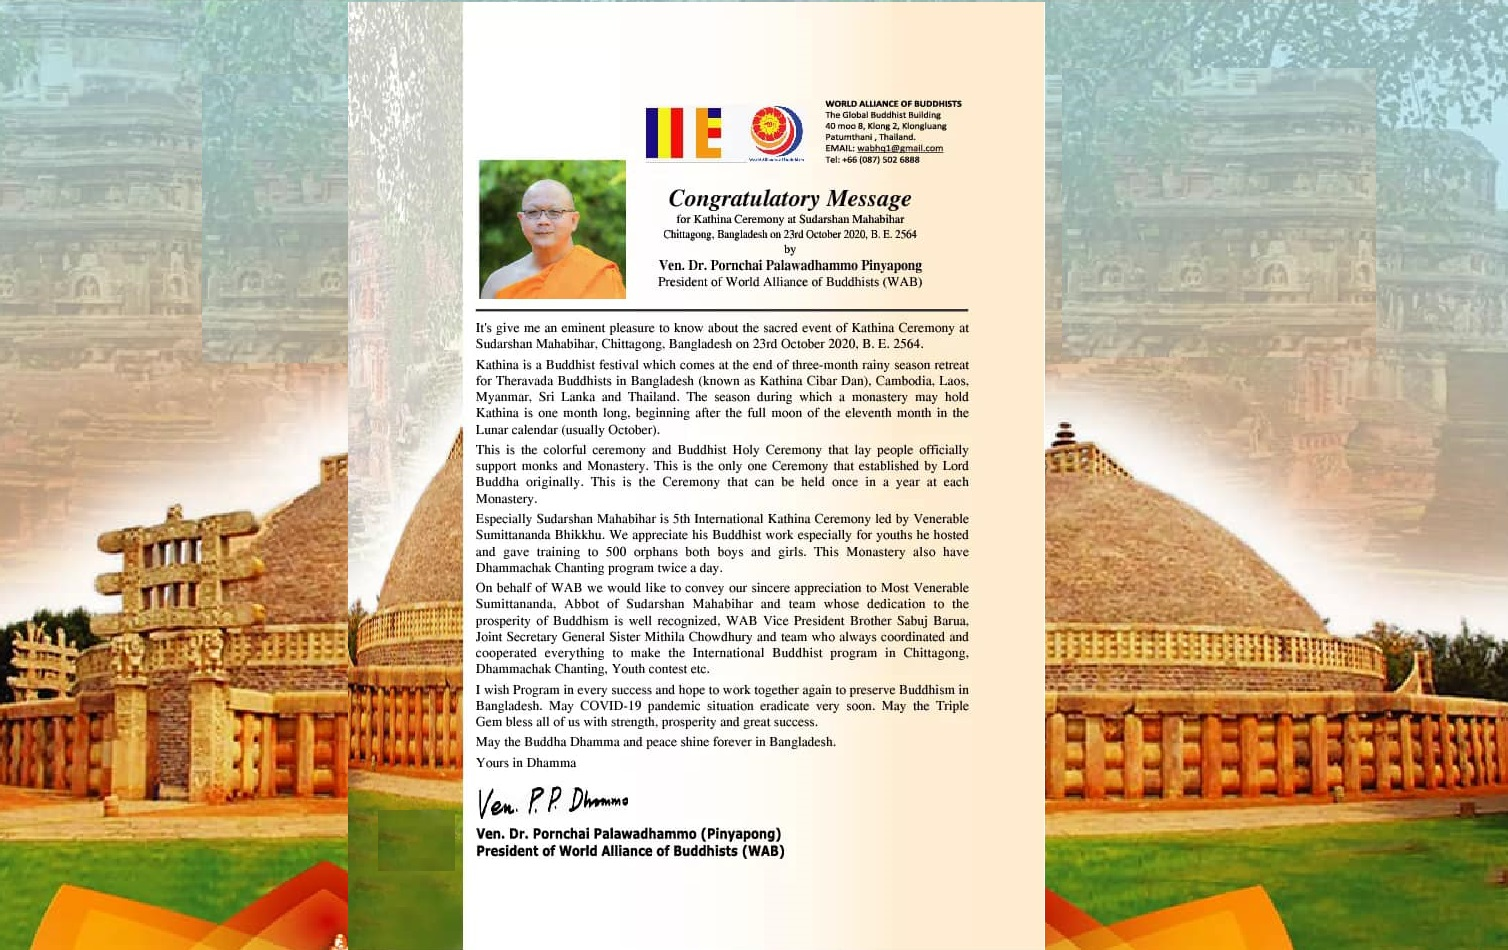 Congratulatory Message: Ven. Dr. Pornchai Palawadhammo Pinyapong President of World Alliance of Buddhists (WAB)